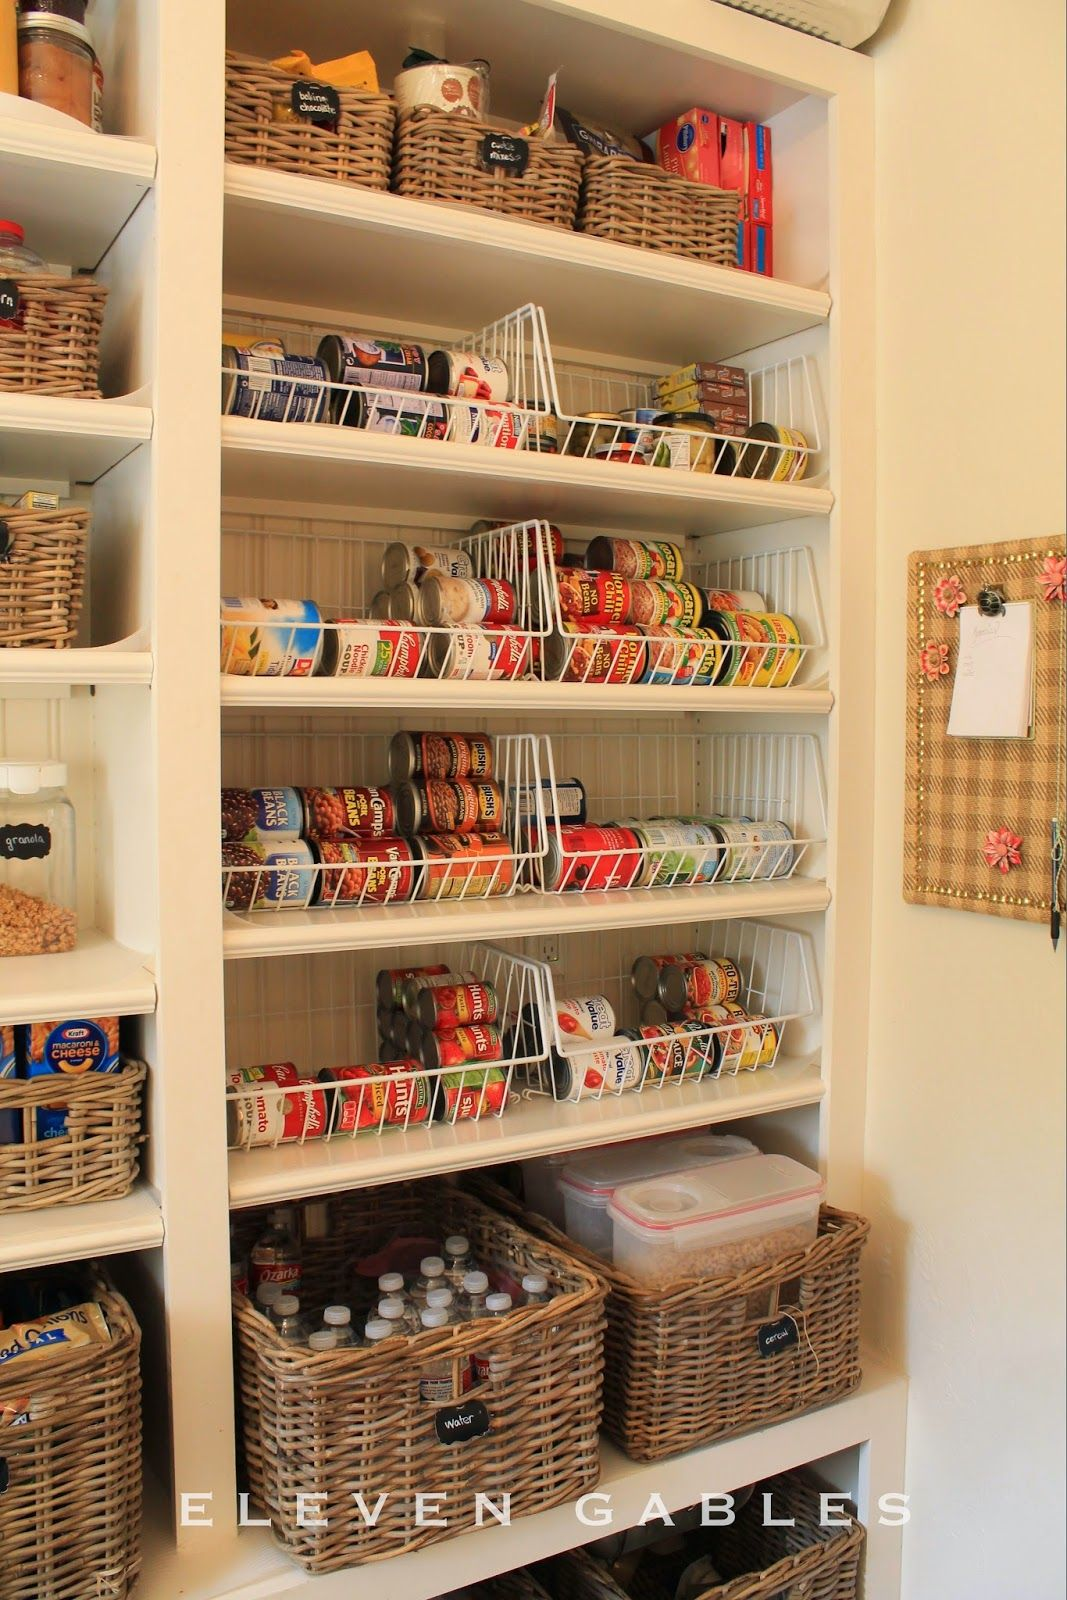 Kitchen Basket Storage Hobo Cabinets Shallow Pantry Shelves With Wire Baskets For Multiples Of